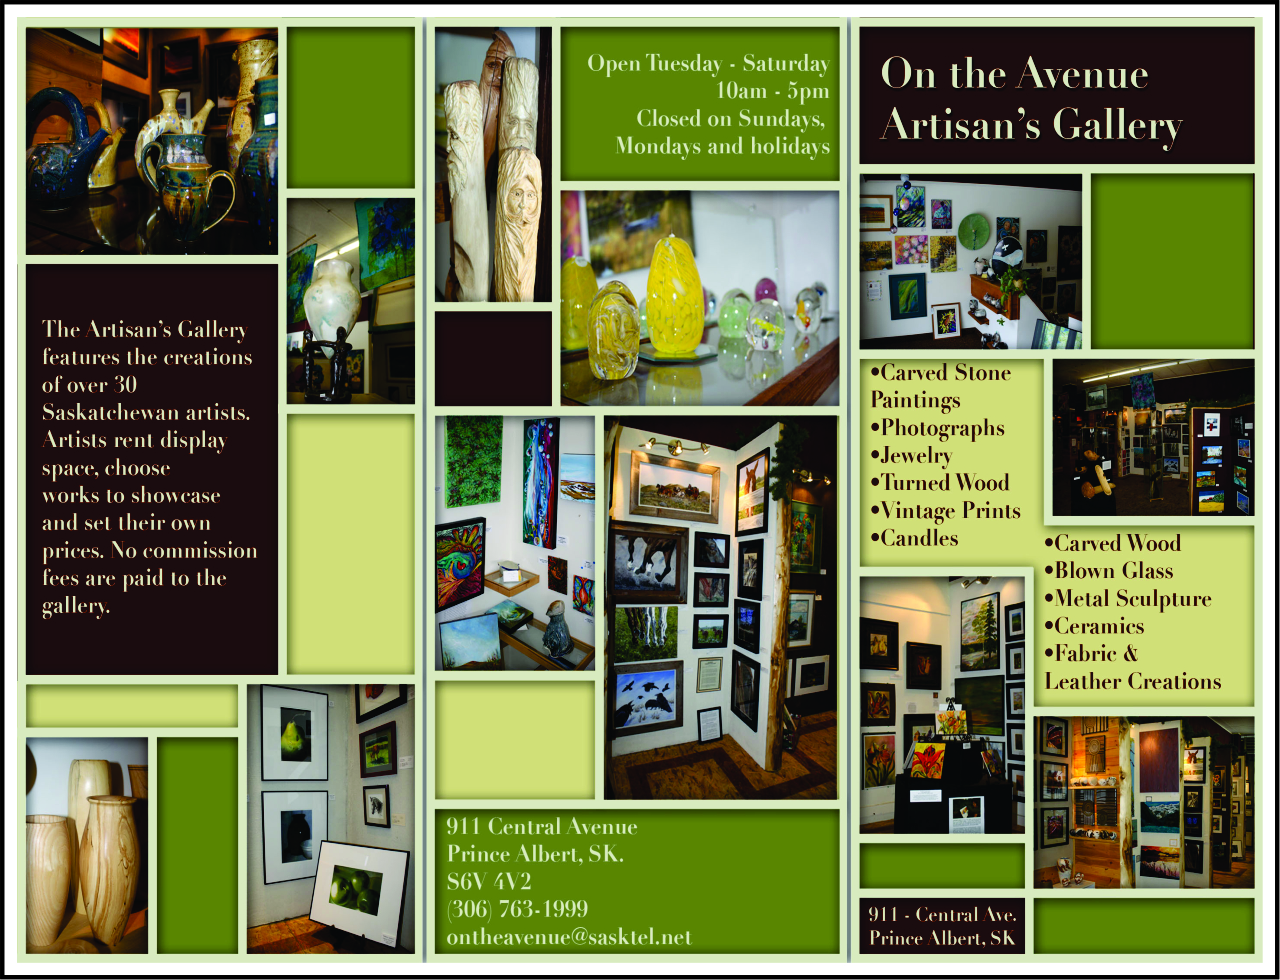 The Artisan's Gallery - Back